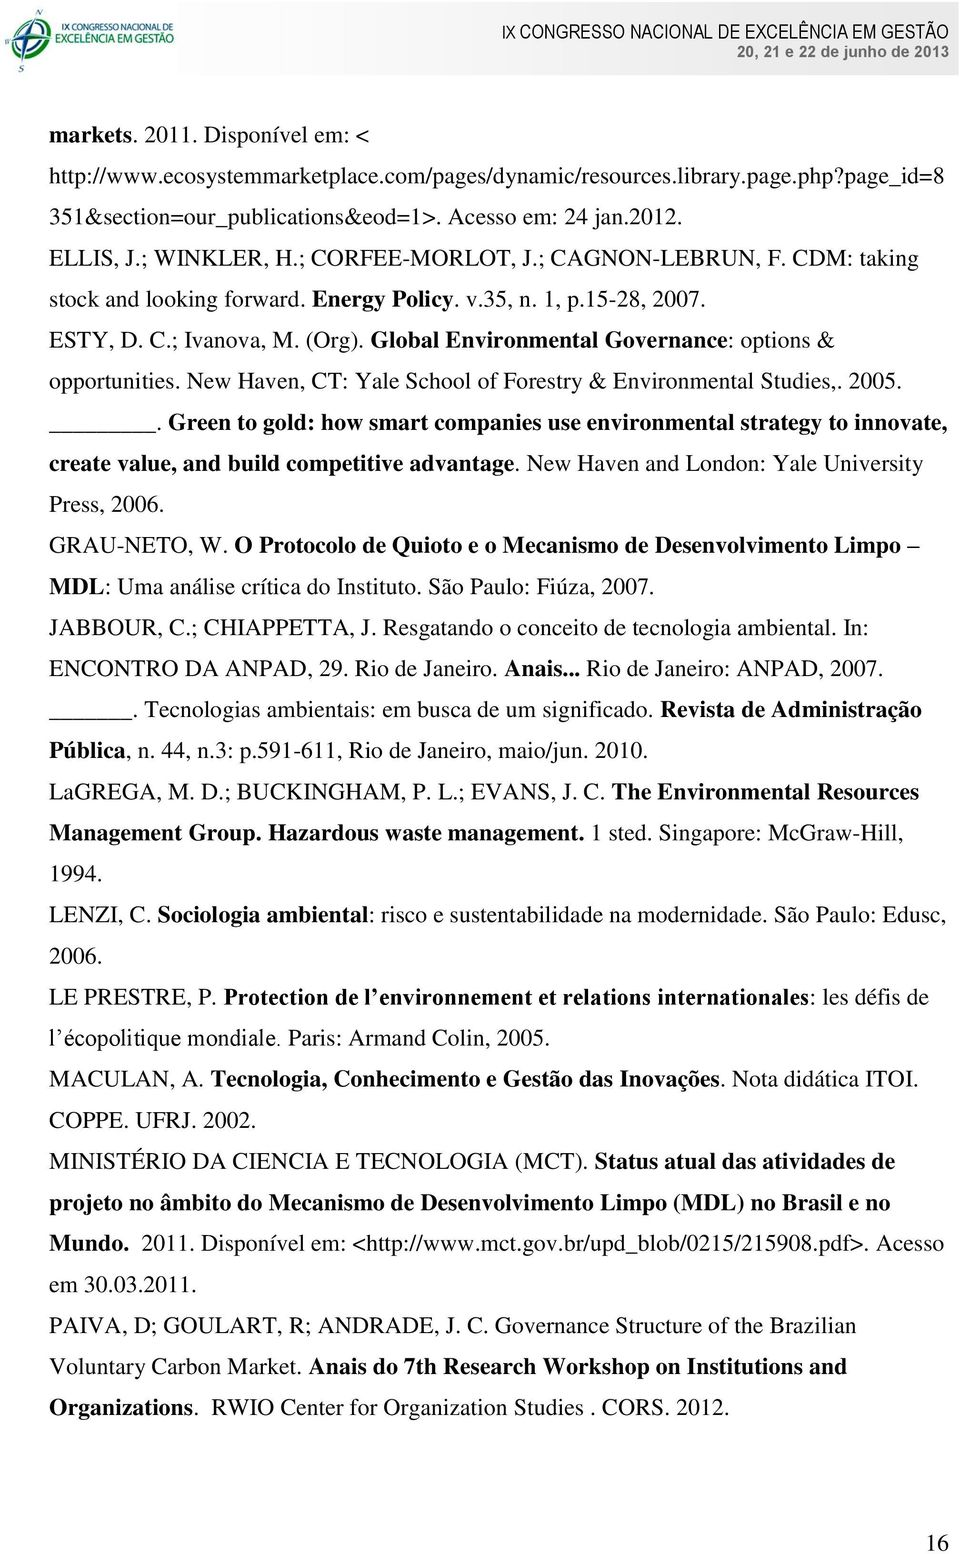 Global Environmental Governance: options & opportunities. New Haven, CT: Yale School of Forestry & Environmental Studies,. 2005.